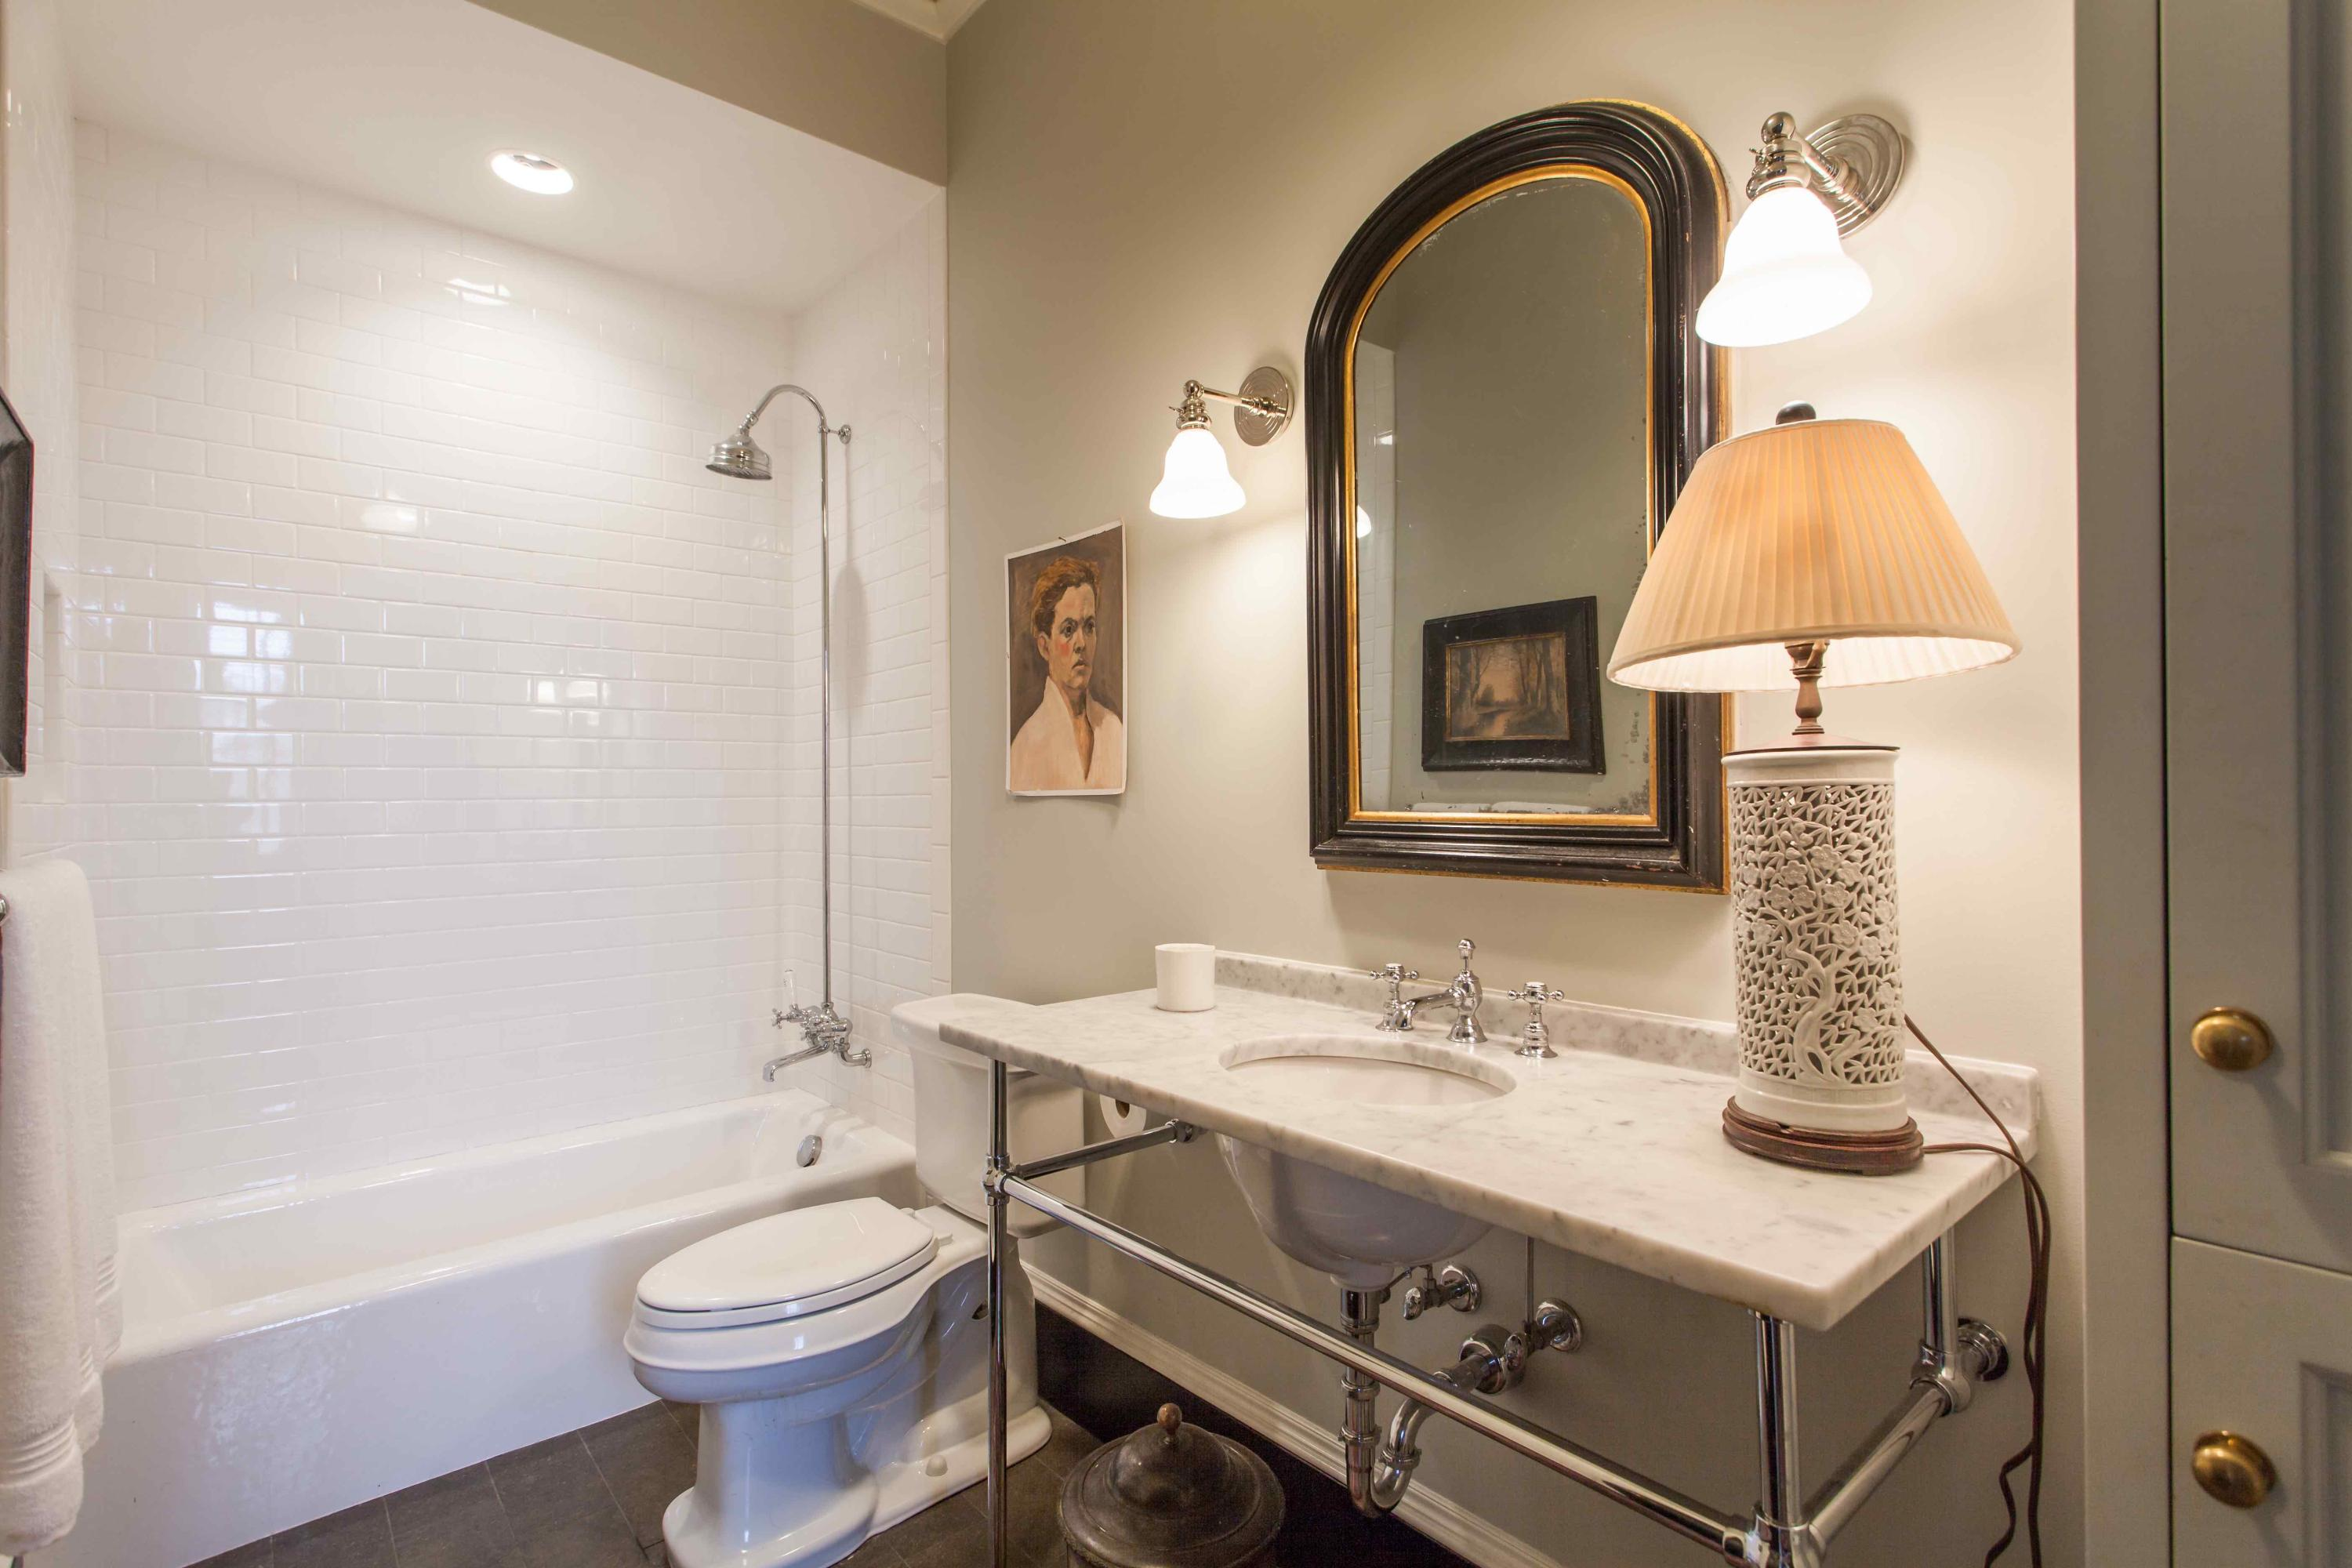 South of Broad Homes For Sale - 58 South Battery, Charleston, SC - 34